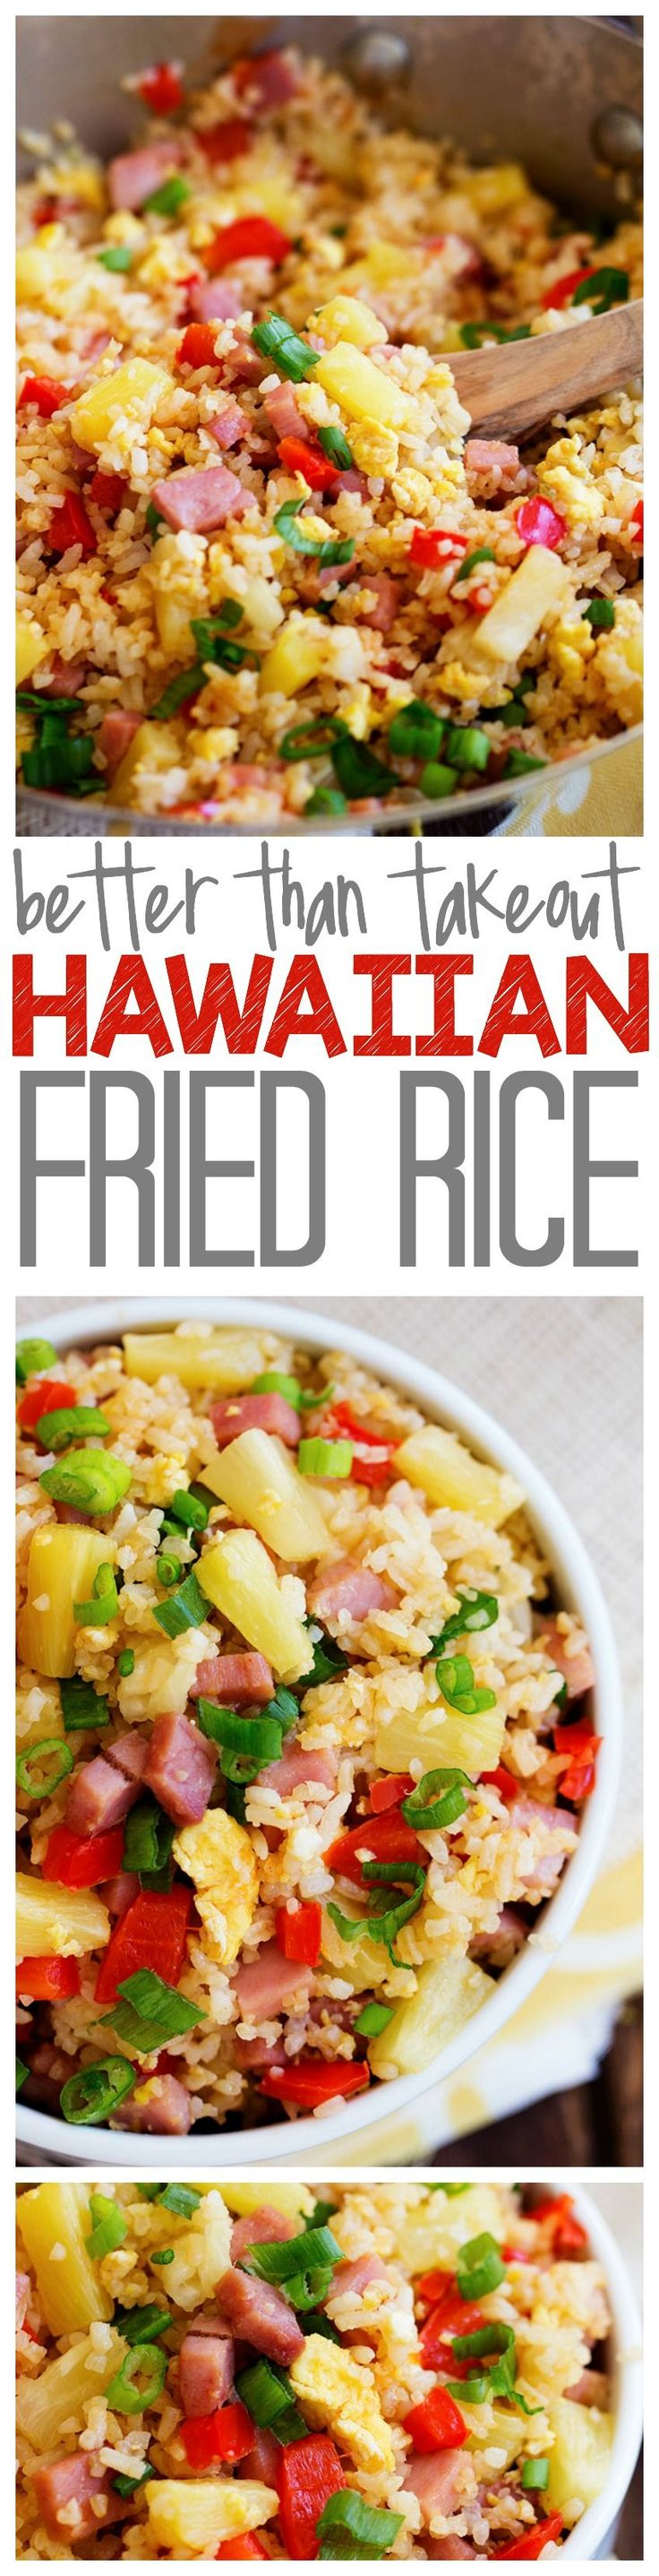 This Hawaiian Fried Rice is SO much better than takeout! Loaded with ham, pineapple and veggies this will blow your mind!